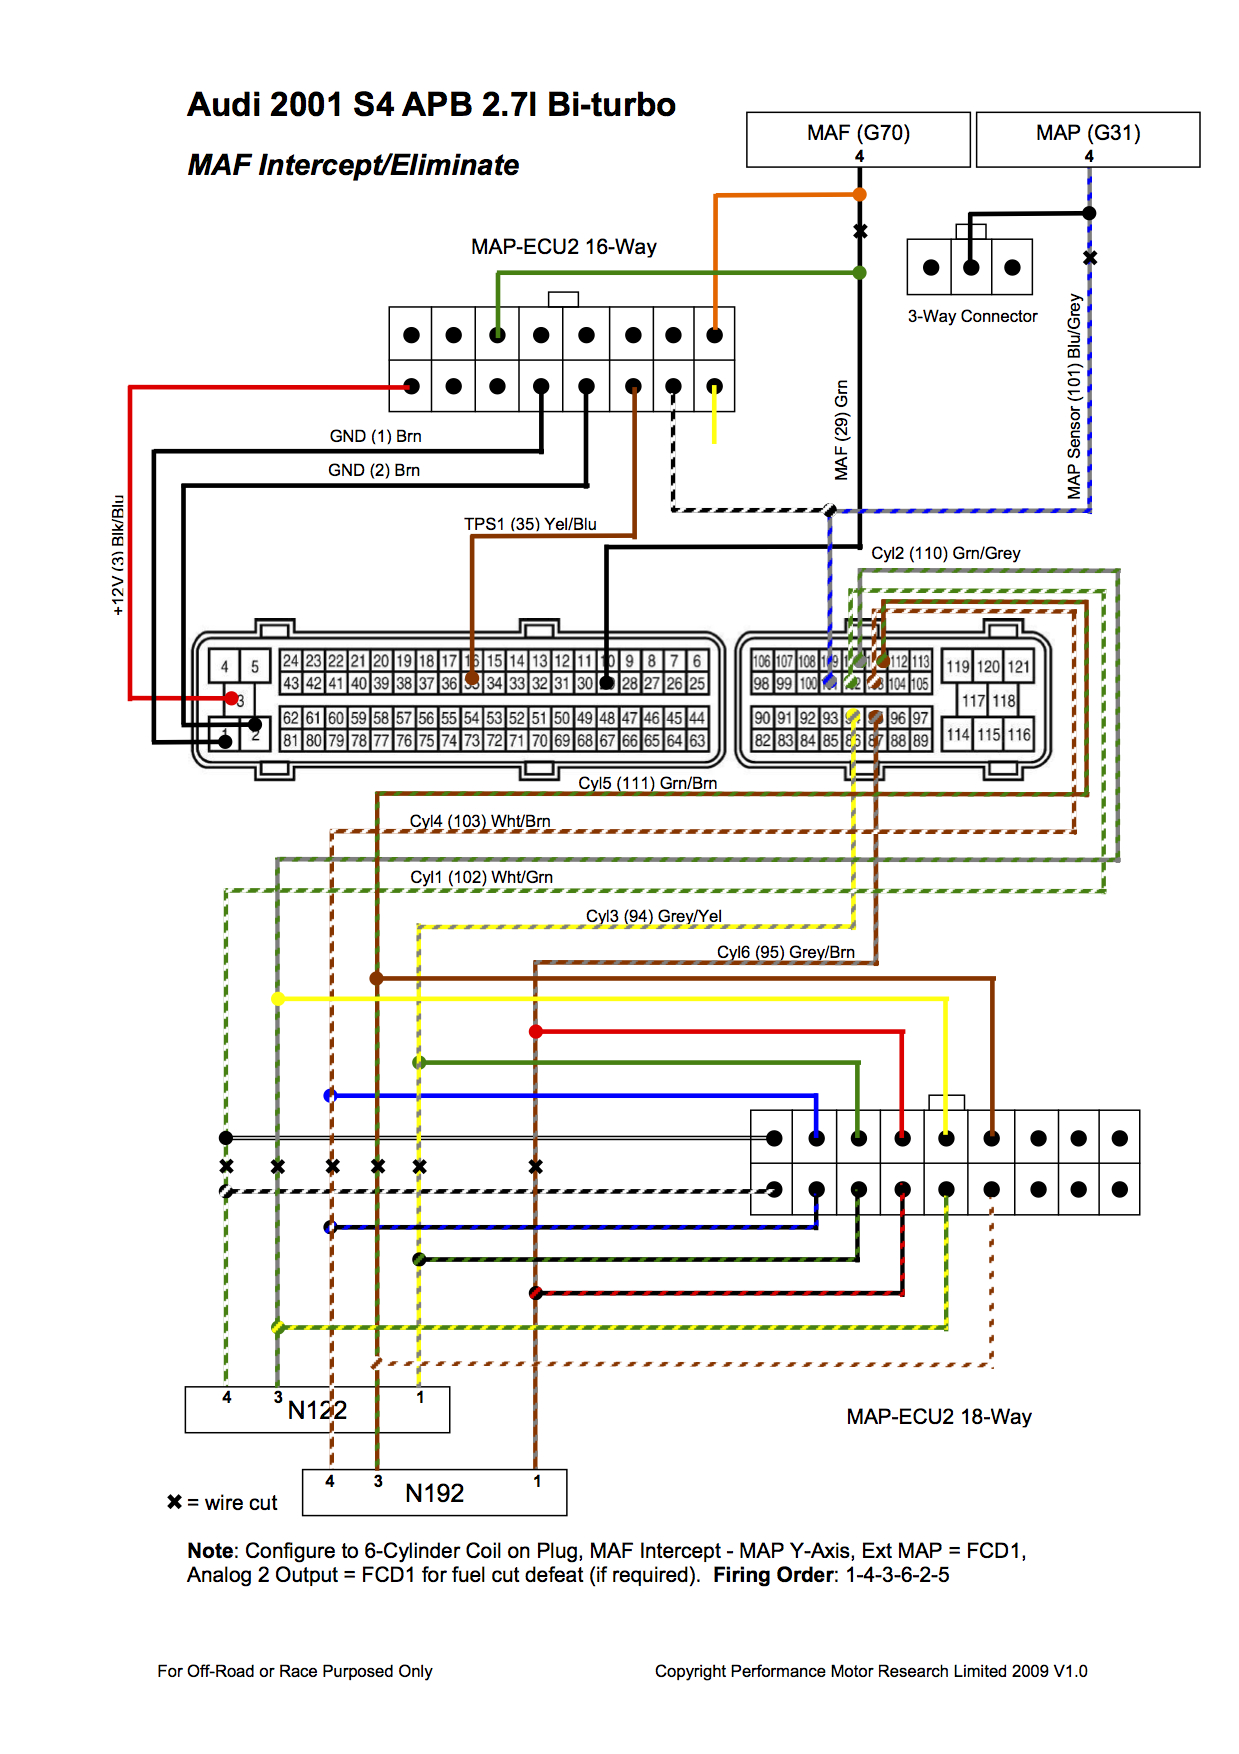 2001 ford falcon stereo wiring diagram nutone fan light subaru 1990 legacy best librarystereo s14 data